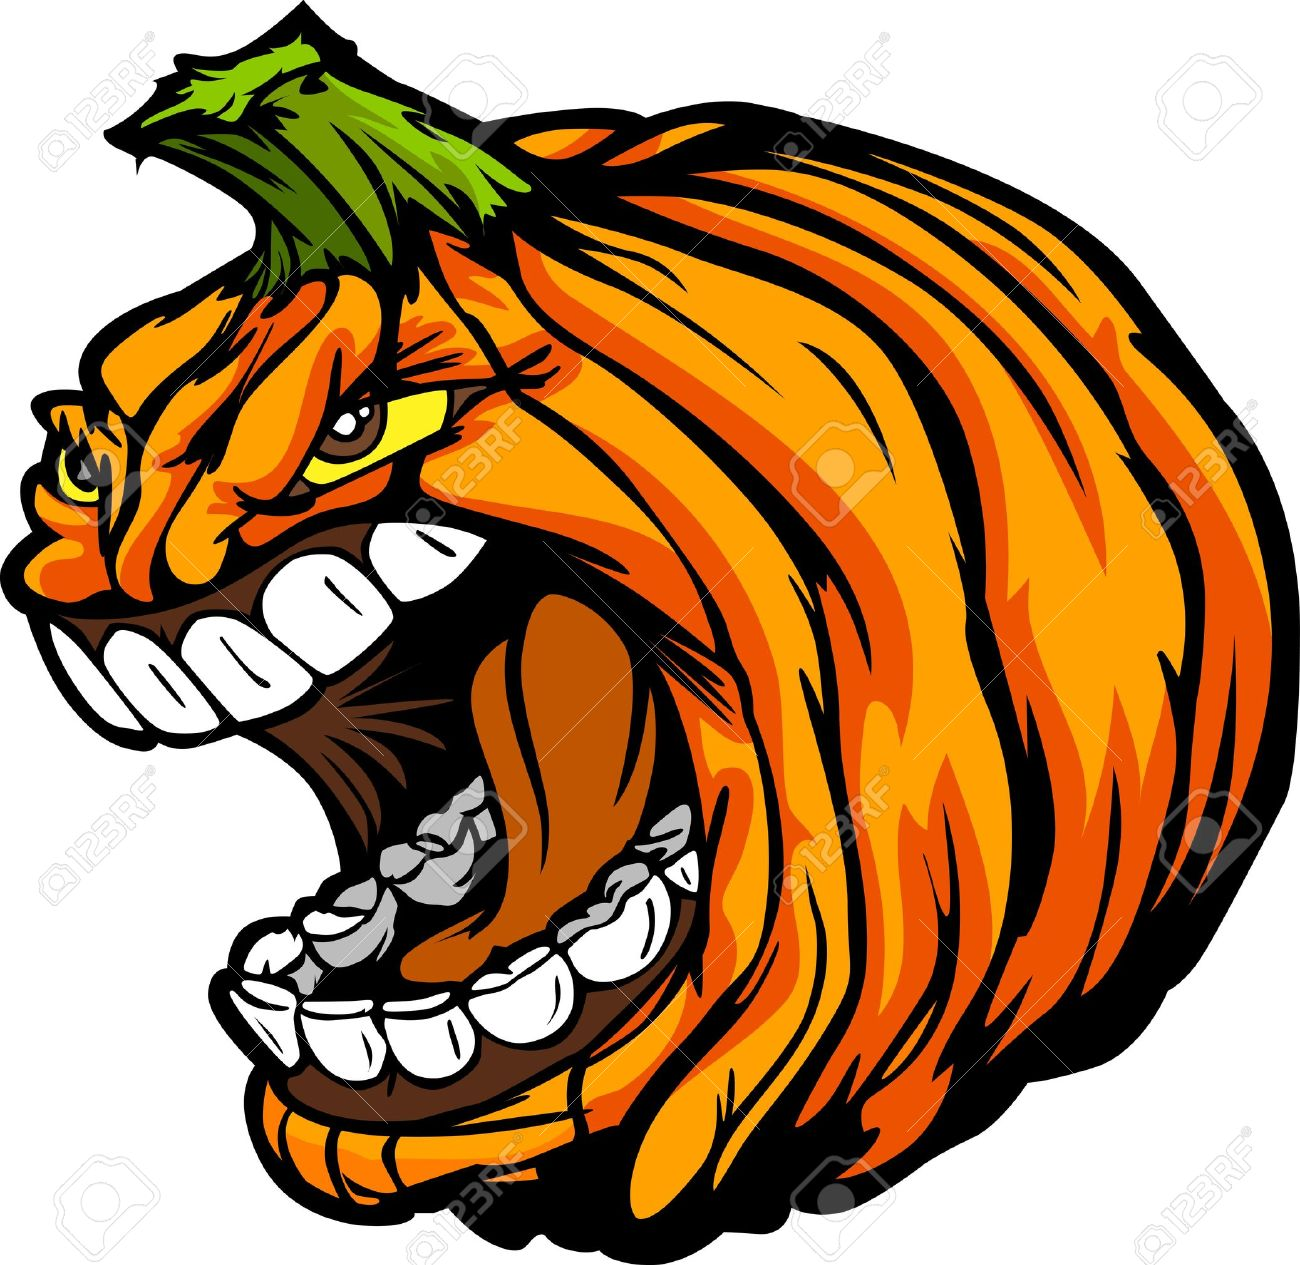 Cartoon image of a scary screaming halloween pumpkin jack o cartoon image of a scary screaming halloween pumpkin jack o lantern head stock vector 15142957 thecheapjerseys Gallery